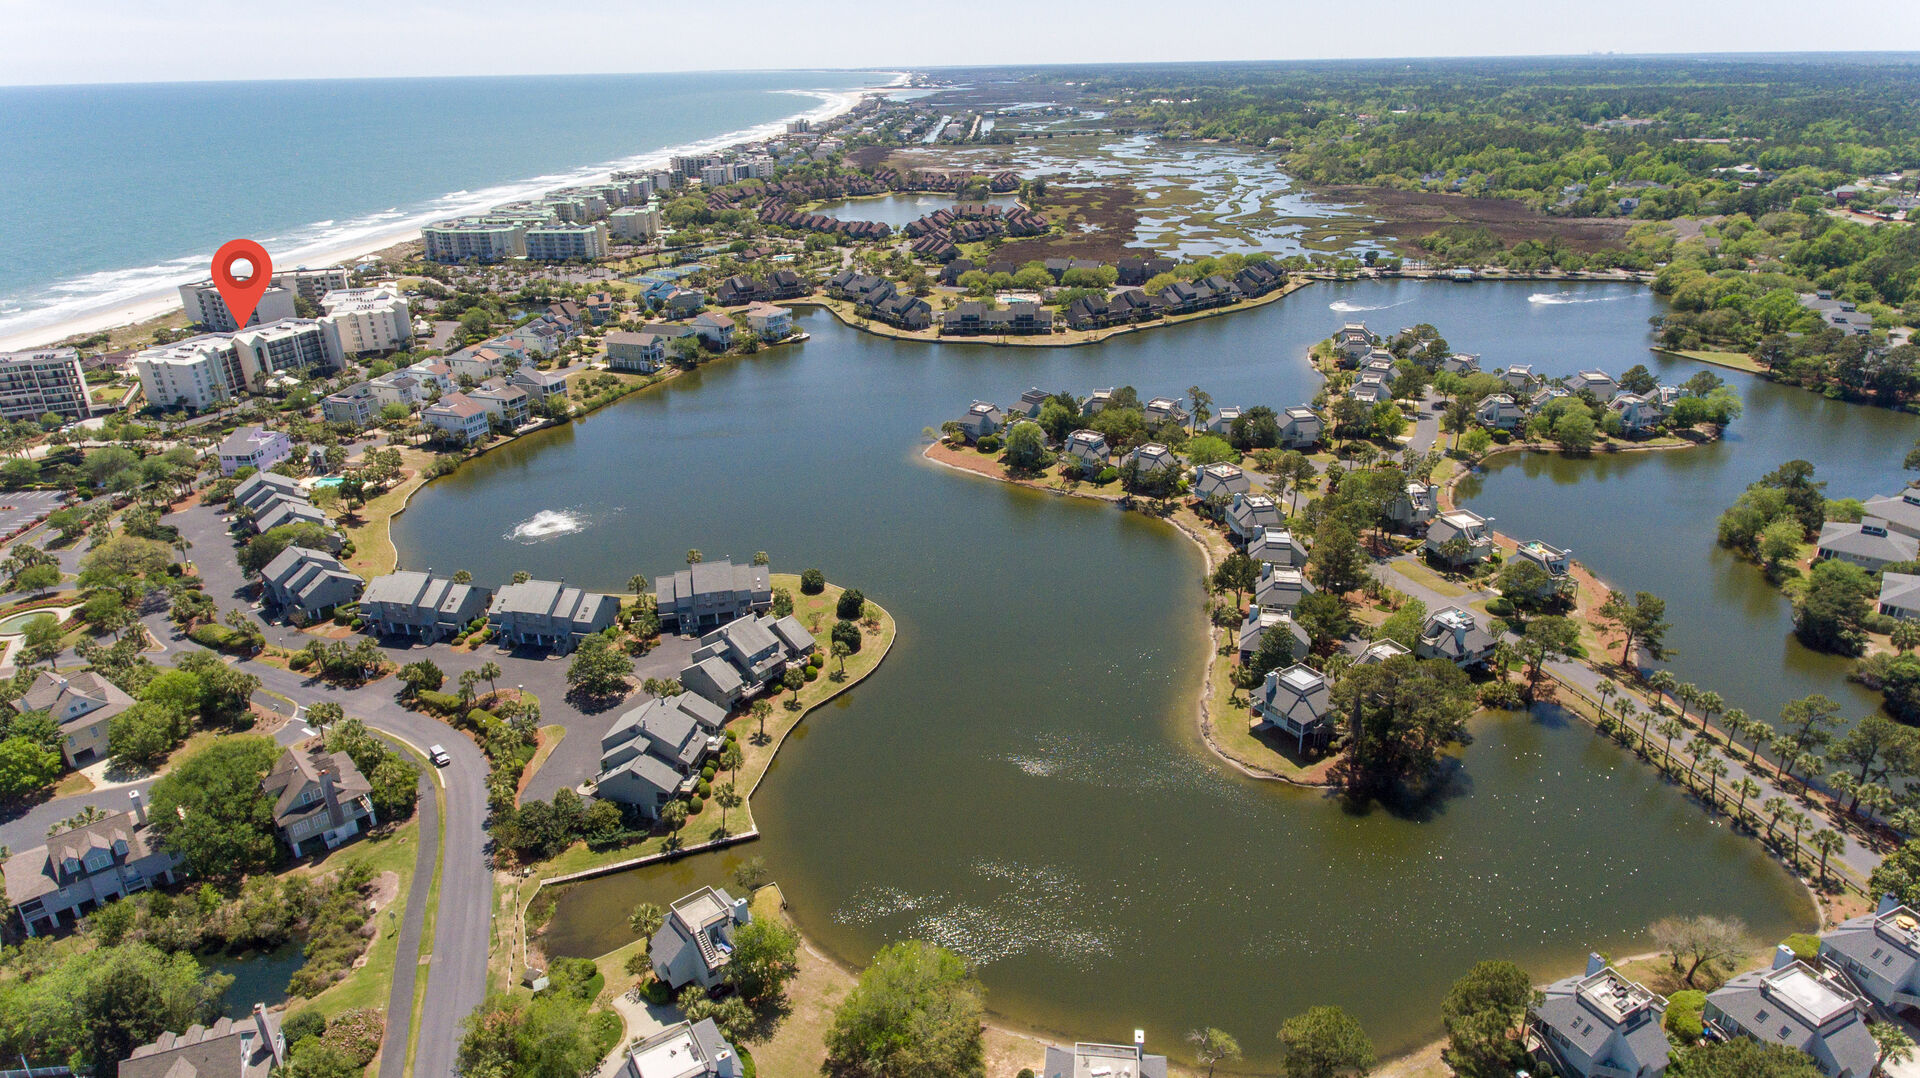 Aerial View of Litchfield By the Sea - Captains Quarters C25